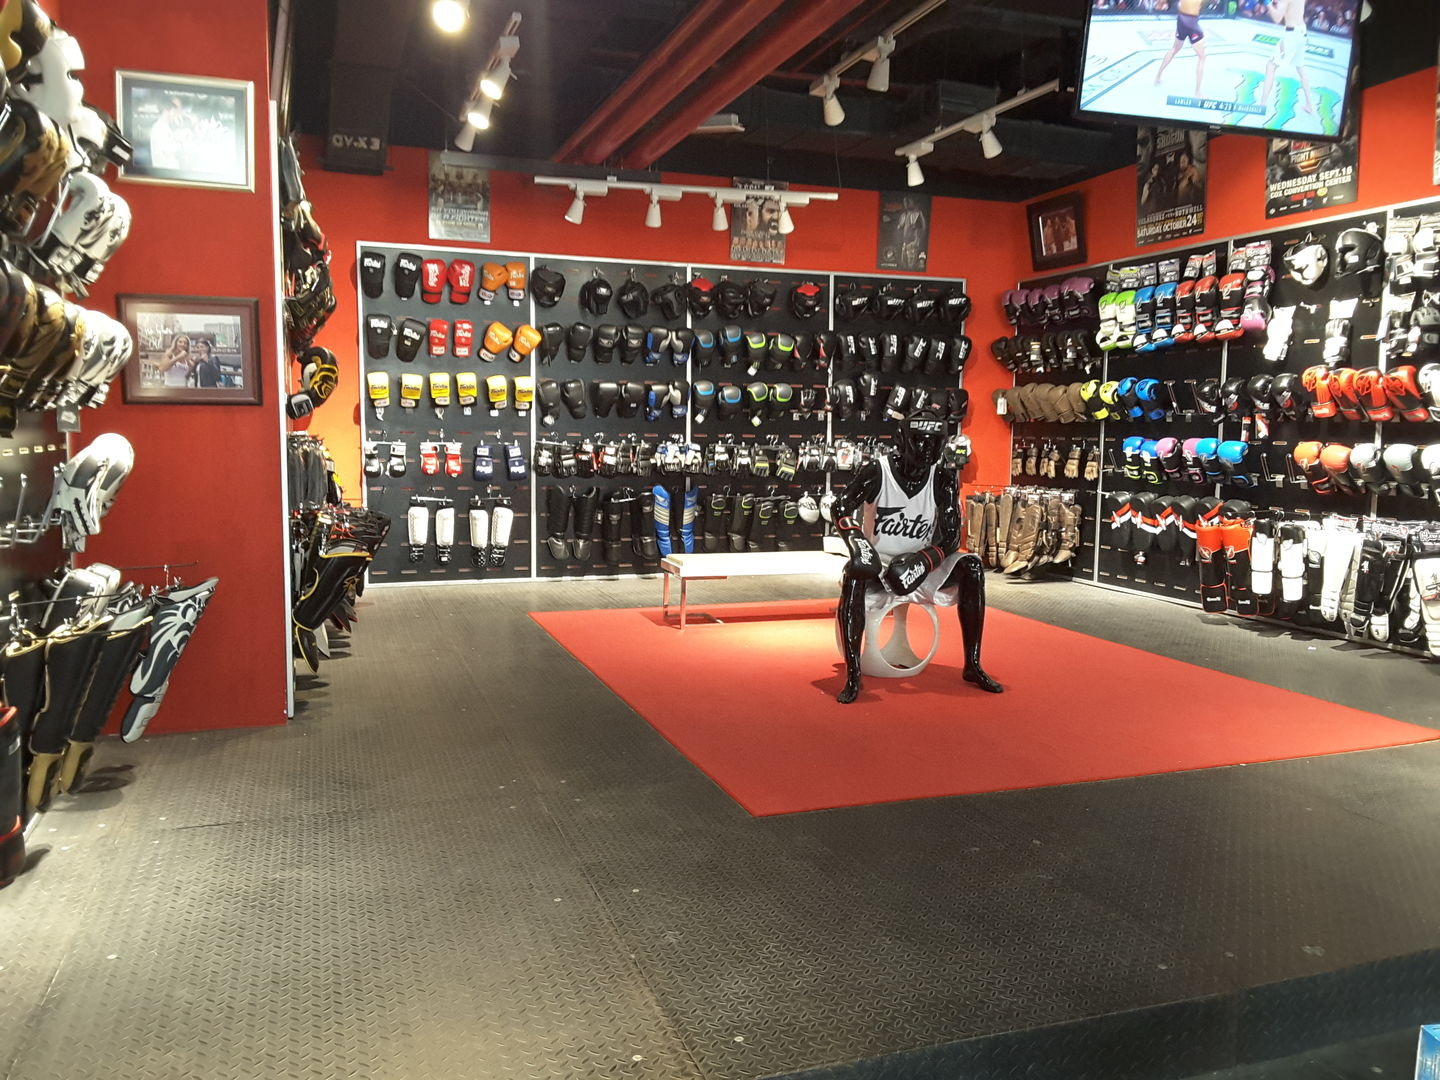 HiDubai-business-mma-fight-shop-shopping-sporting-goods-equipment-al-barsha-1-dubai-2